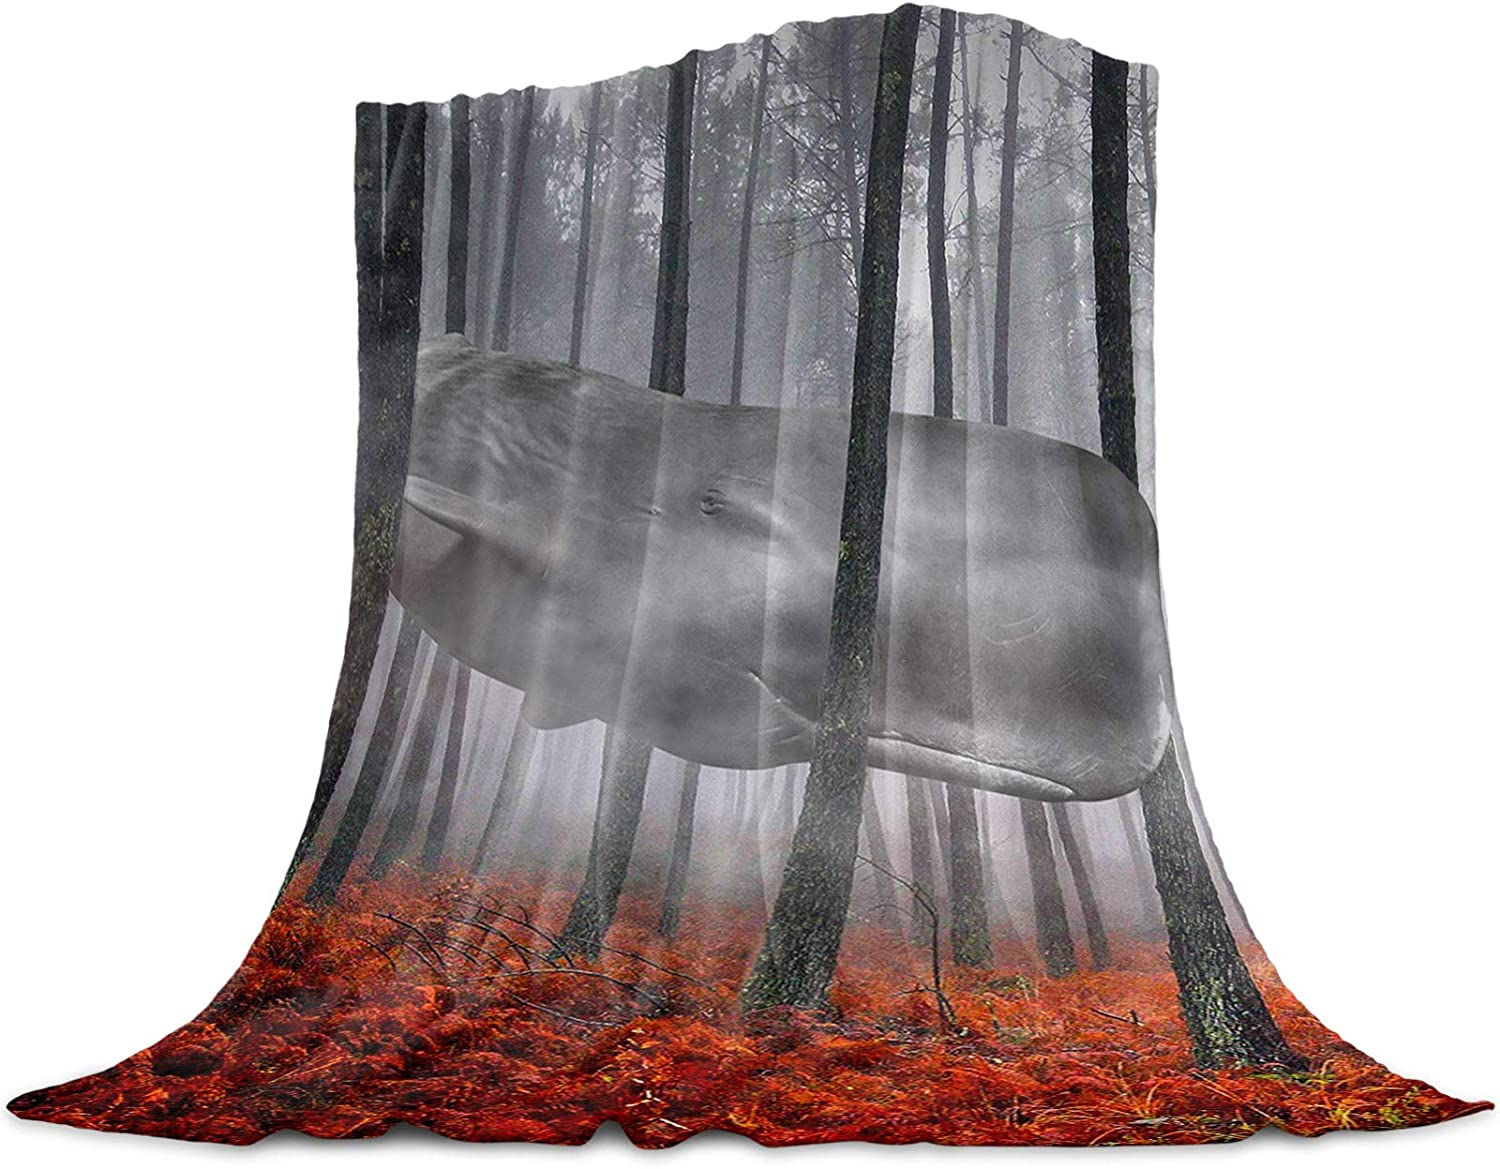 SODIKA Fleece Ranking TOP9 Product Throw Blanket Flannel Blankets for Throws Couc and